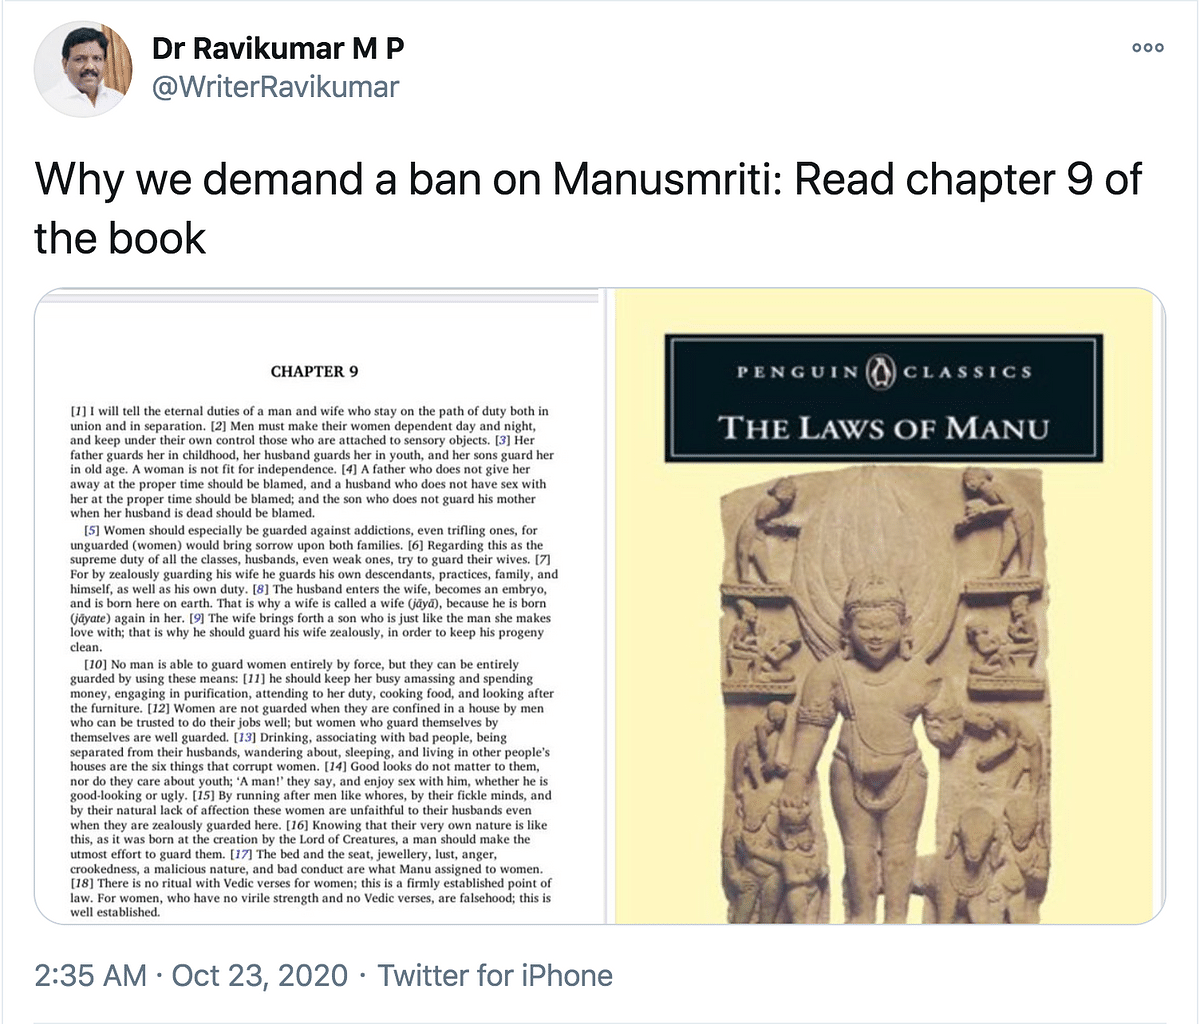 Thirumavalavan and other VCK leaders like MLA Ravikumar have tweeted translations of the Manusmriti in support of their interpretation and asked for a ban.